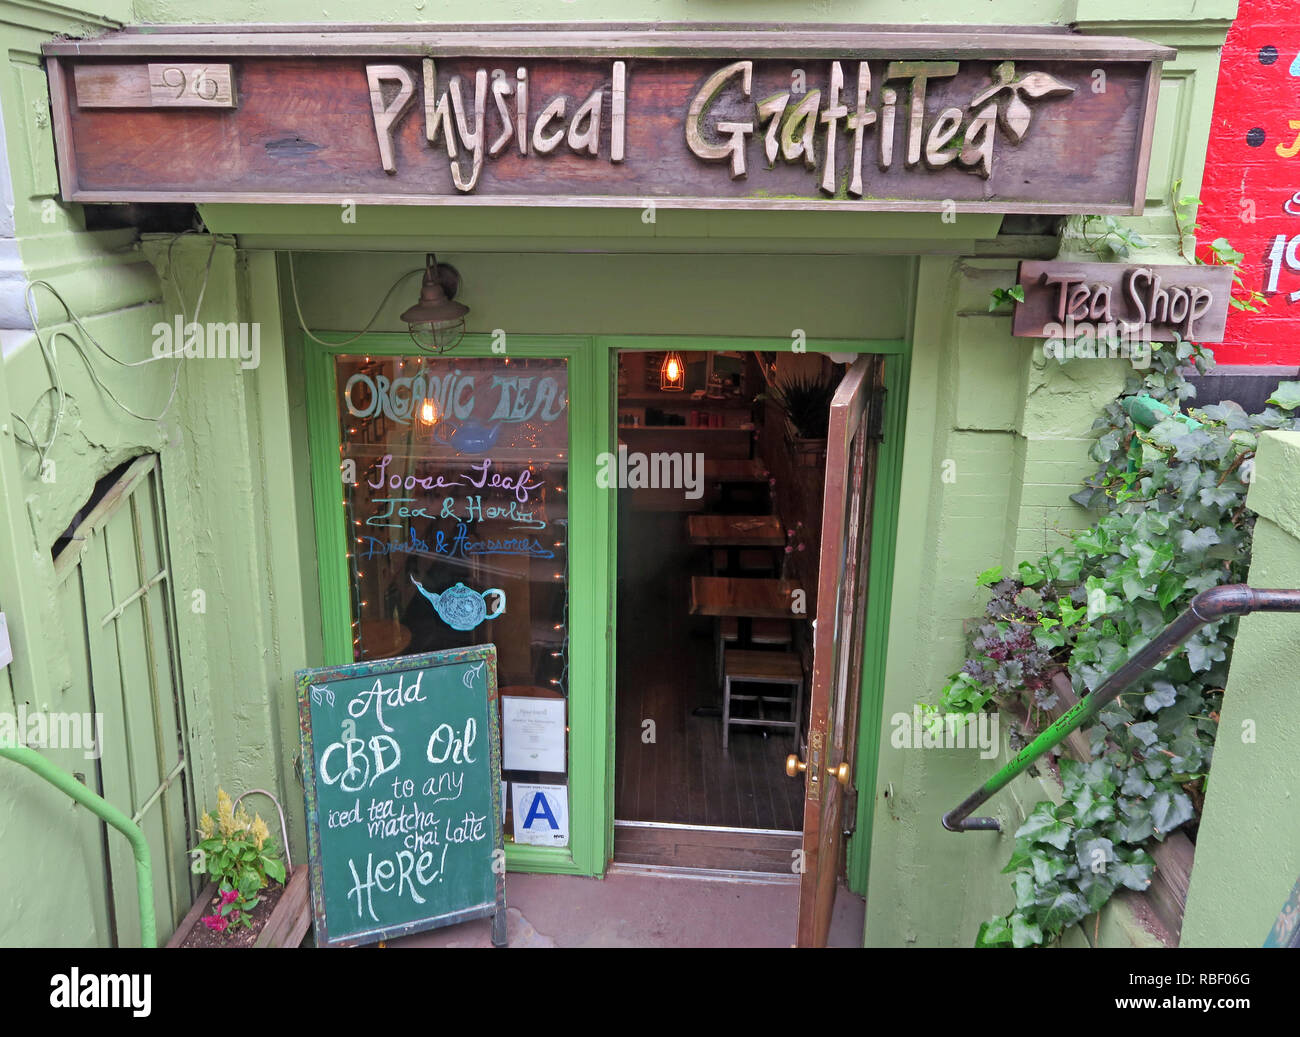 Physical Graffitea ( Physical Graffiti ) after Led Zeppelin album, cafe, 96 St Marks Pl, New York, NY 10009, USA Stock Photo